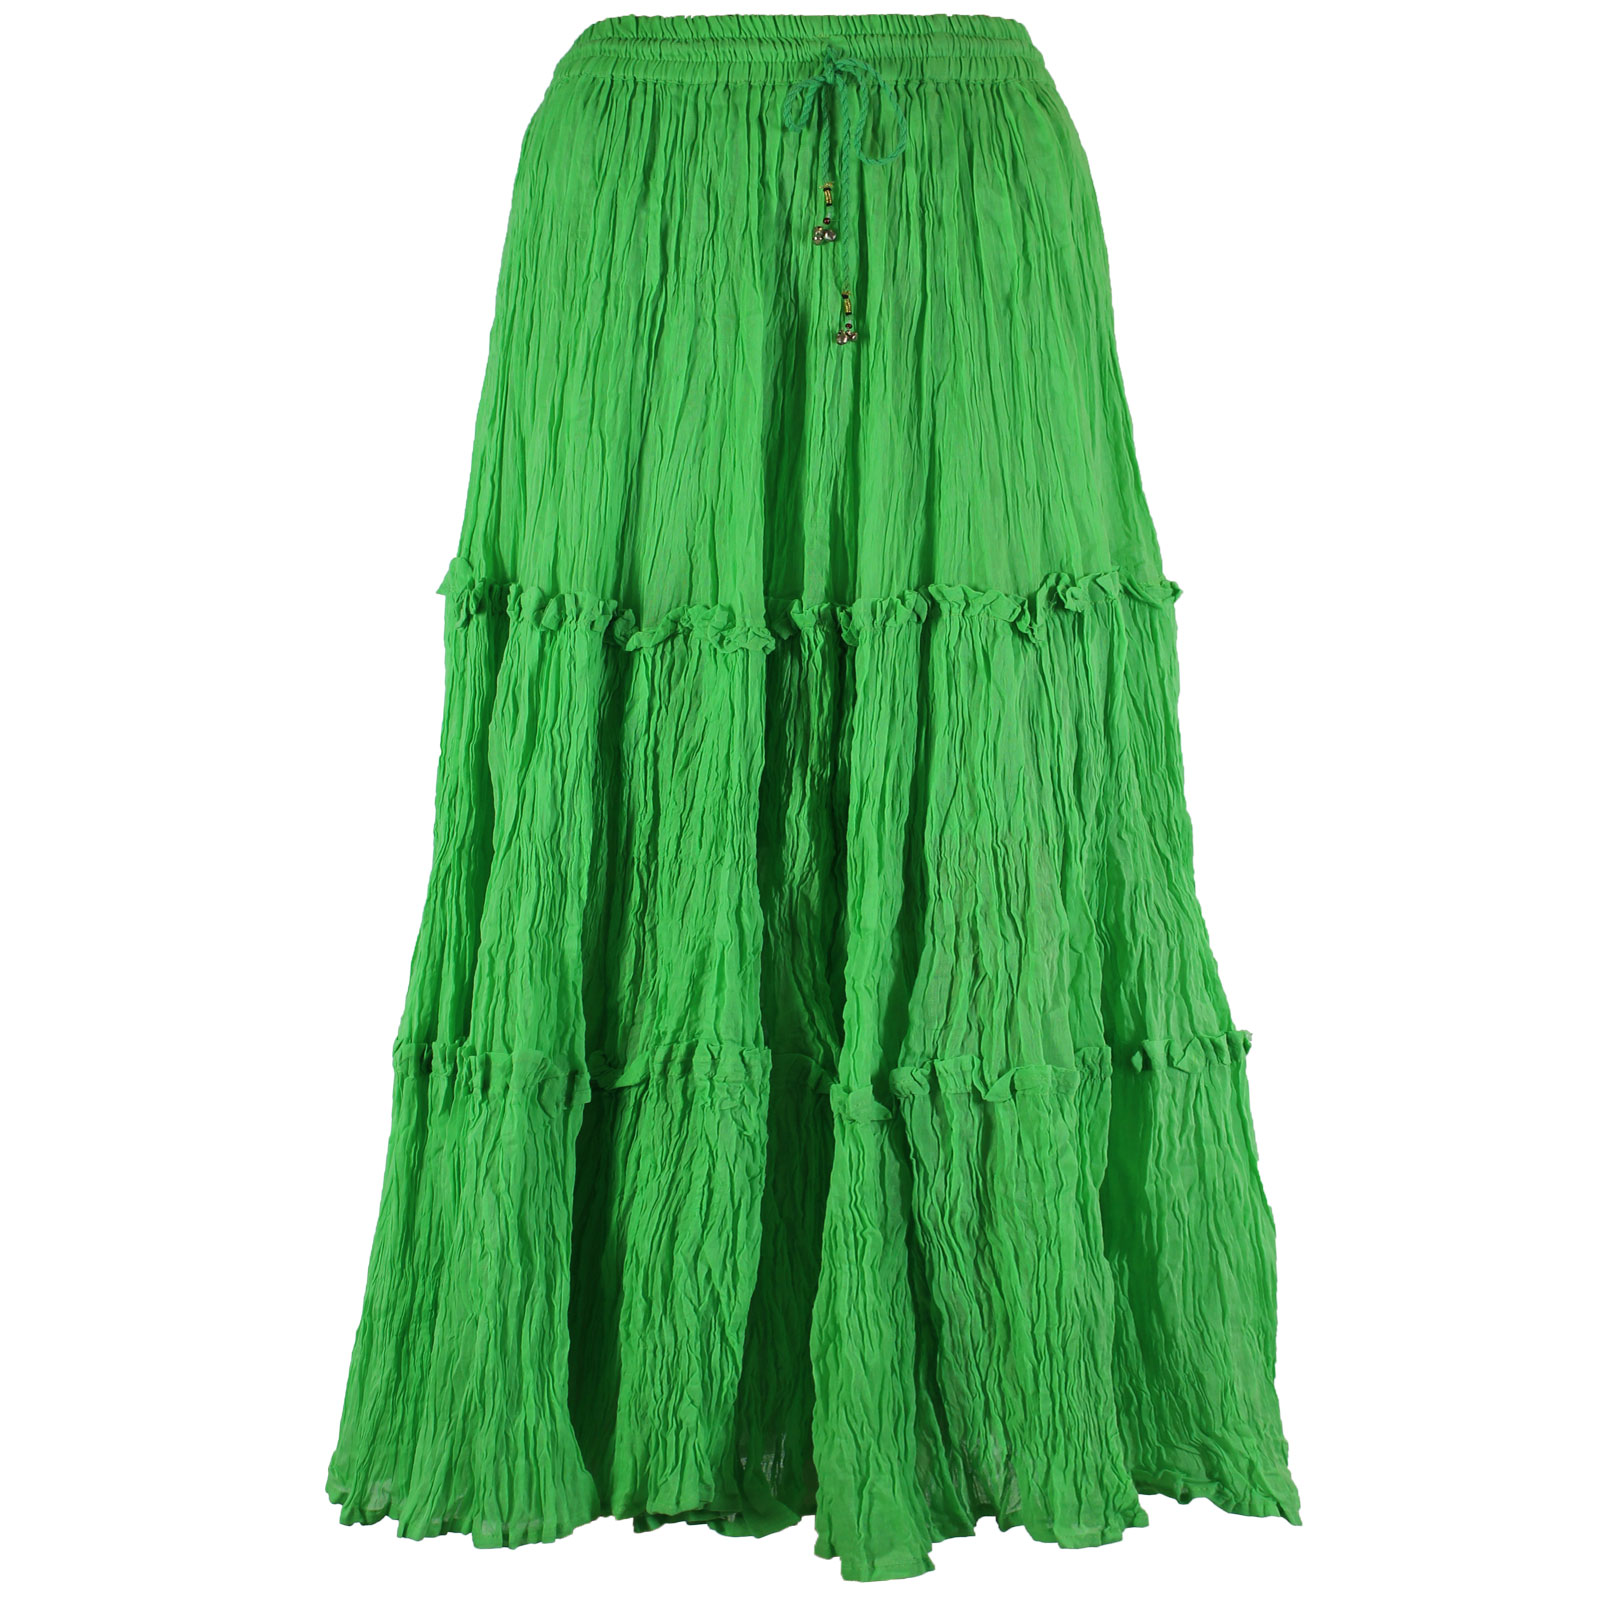 Wholesale Skirts - Cotton Three Tier Broomstick 500 & 529 Ankle Length - Spring Green - One Size (S-XL)